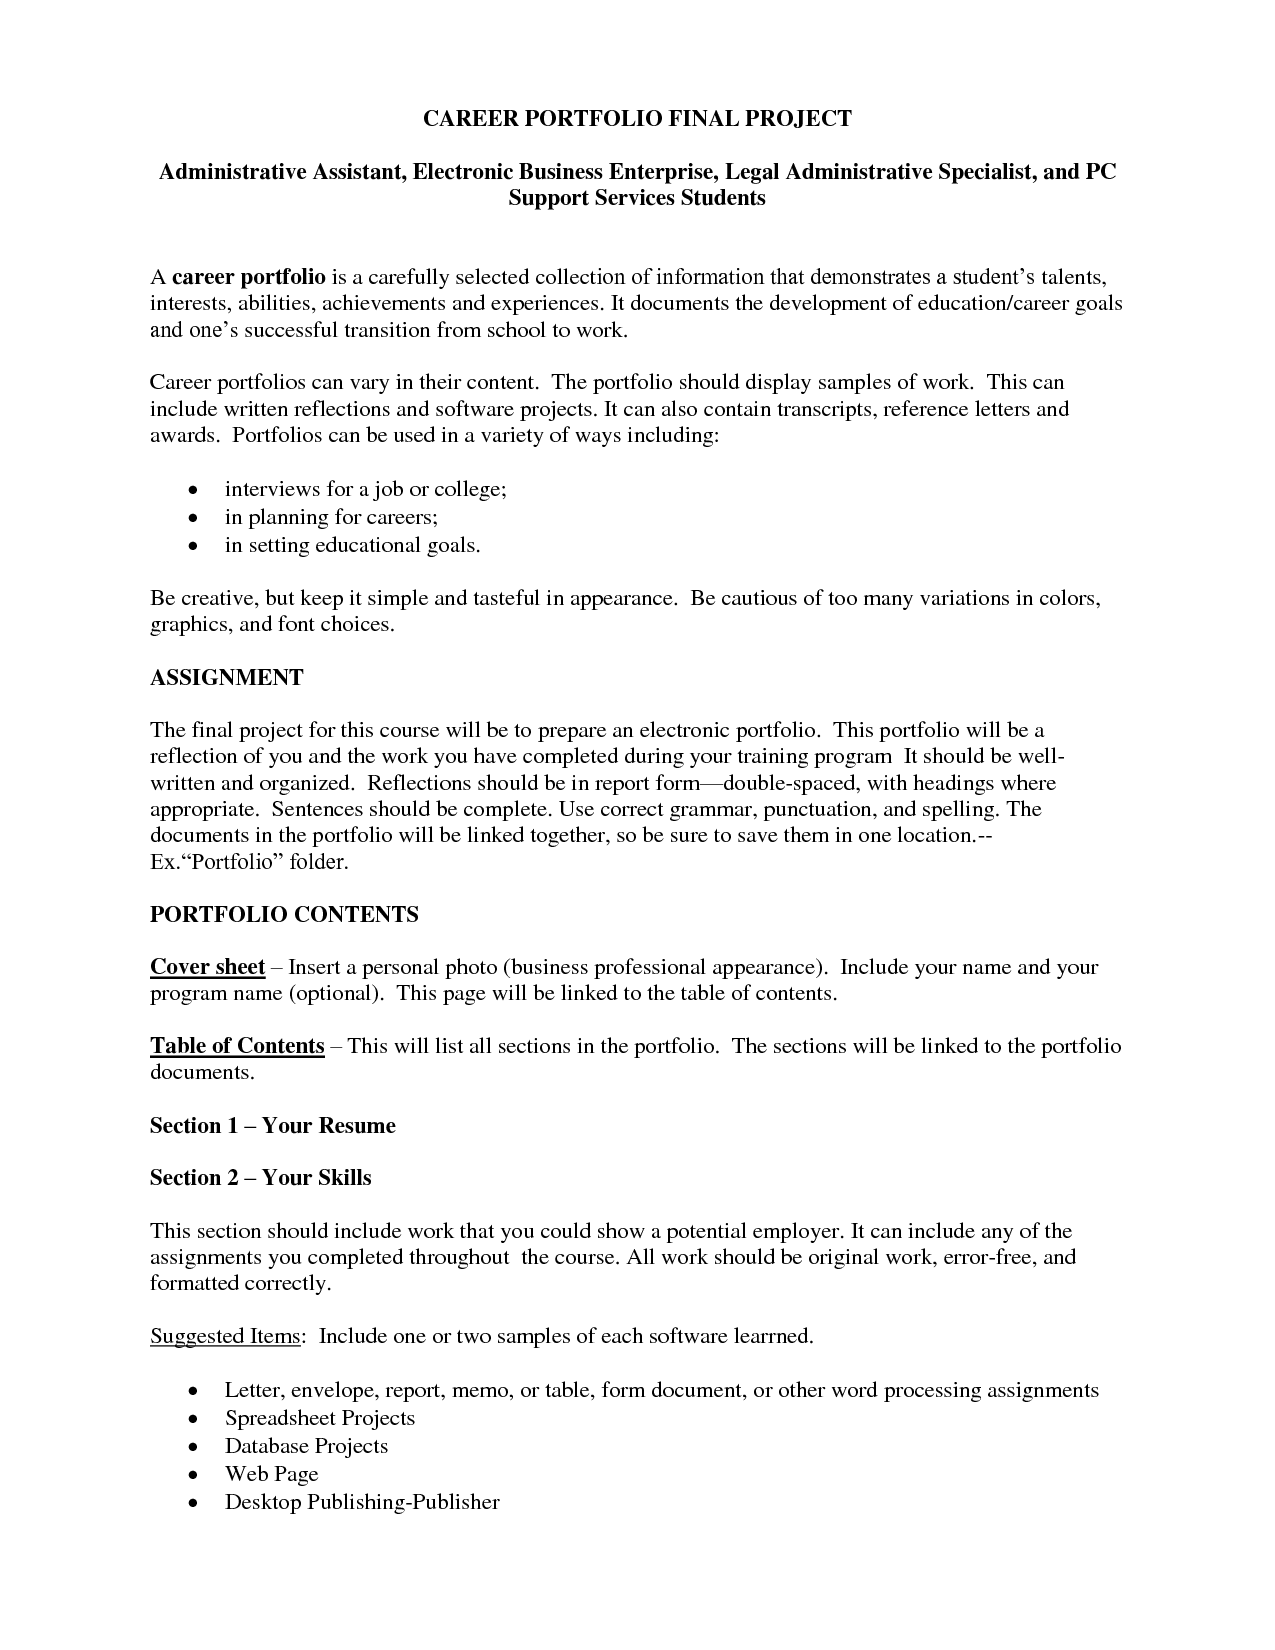 Office Assistant Resume Templates Entrancing Legal Administrative Resume Samples  Httpersumelegal